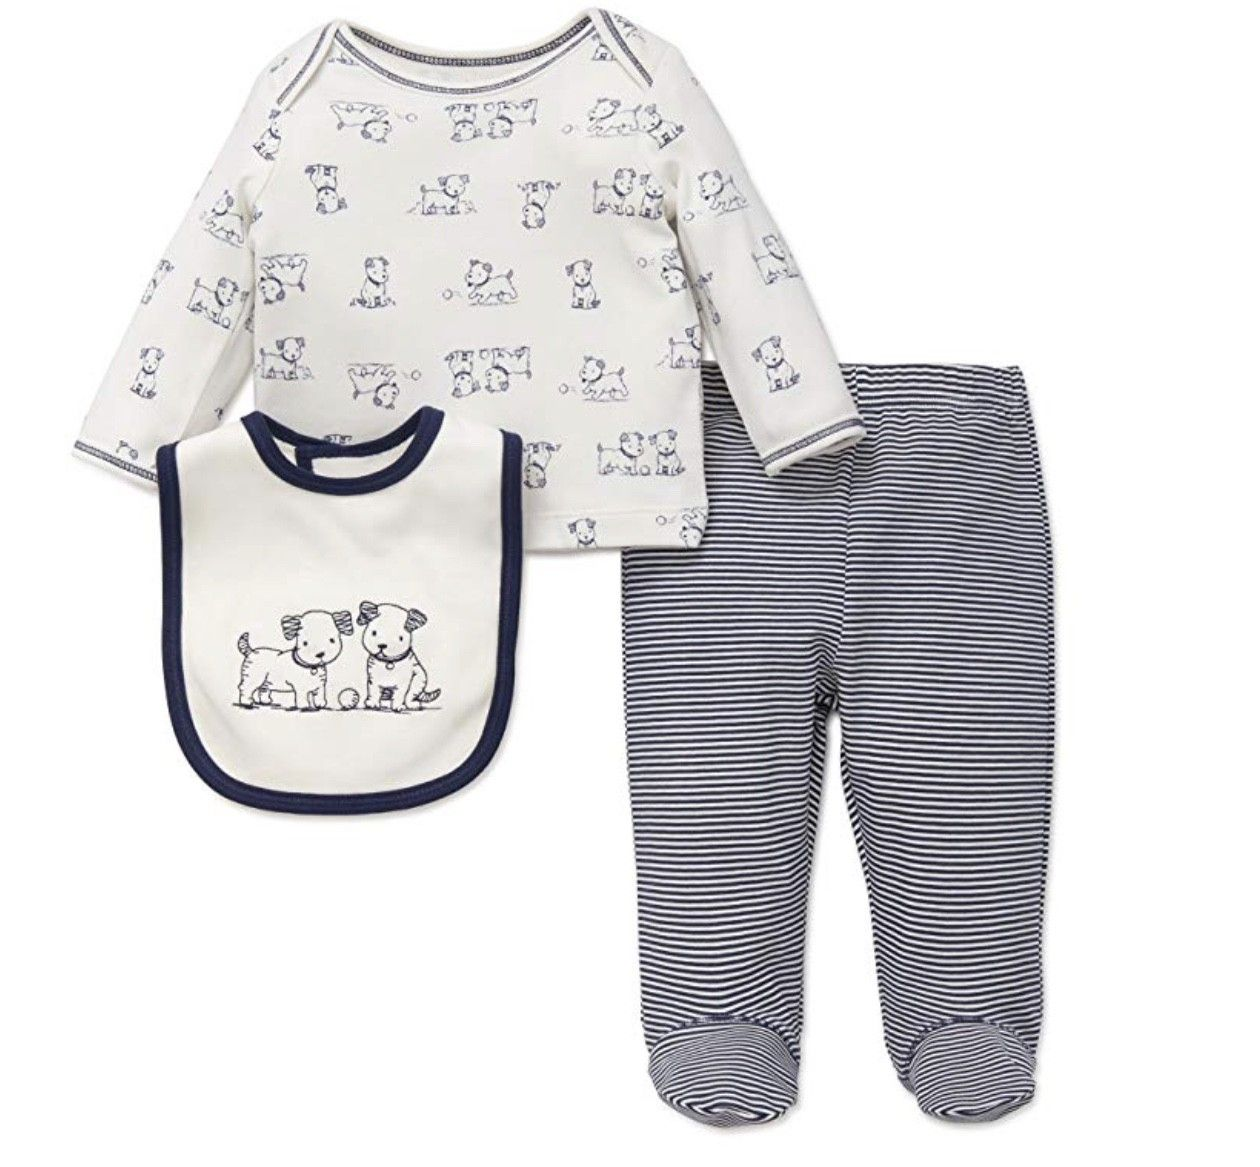 LITTLE ME LAP SHOULDER SET WITH BIB NAVY MULTI WITH DOGS